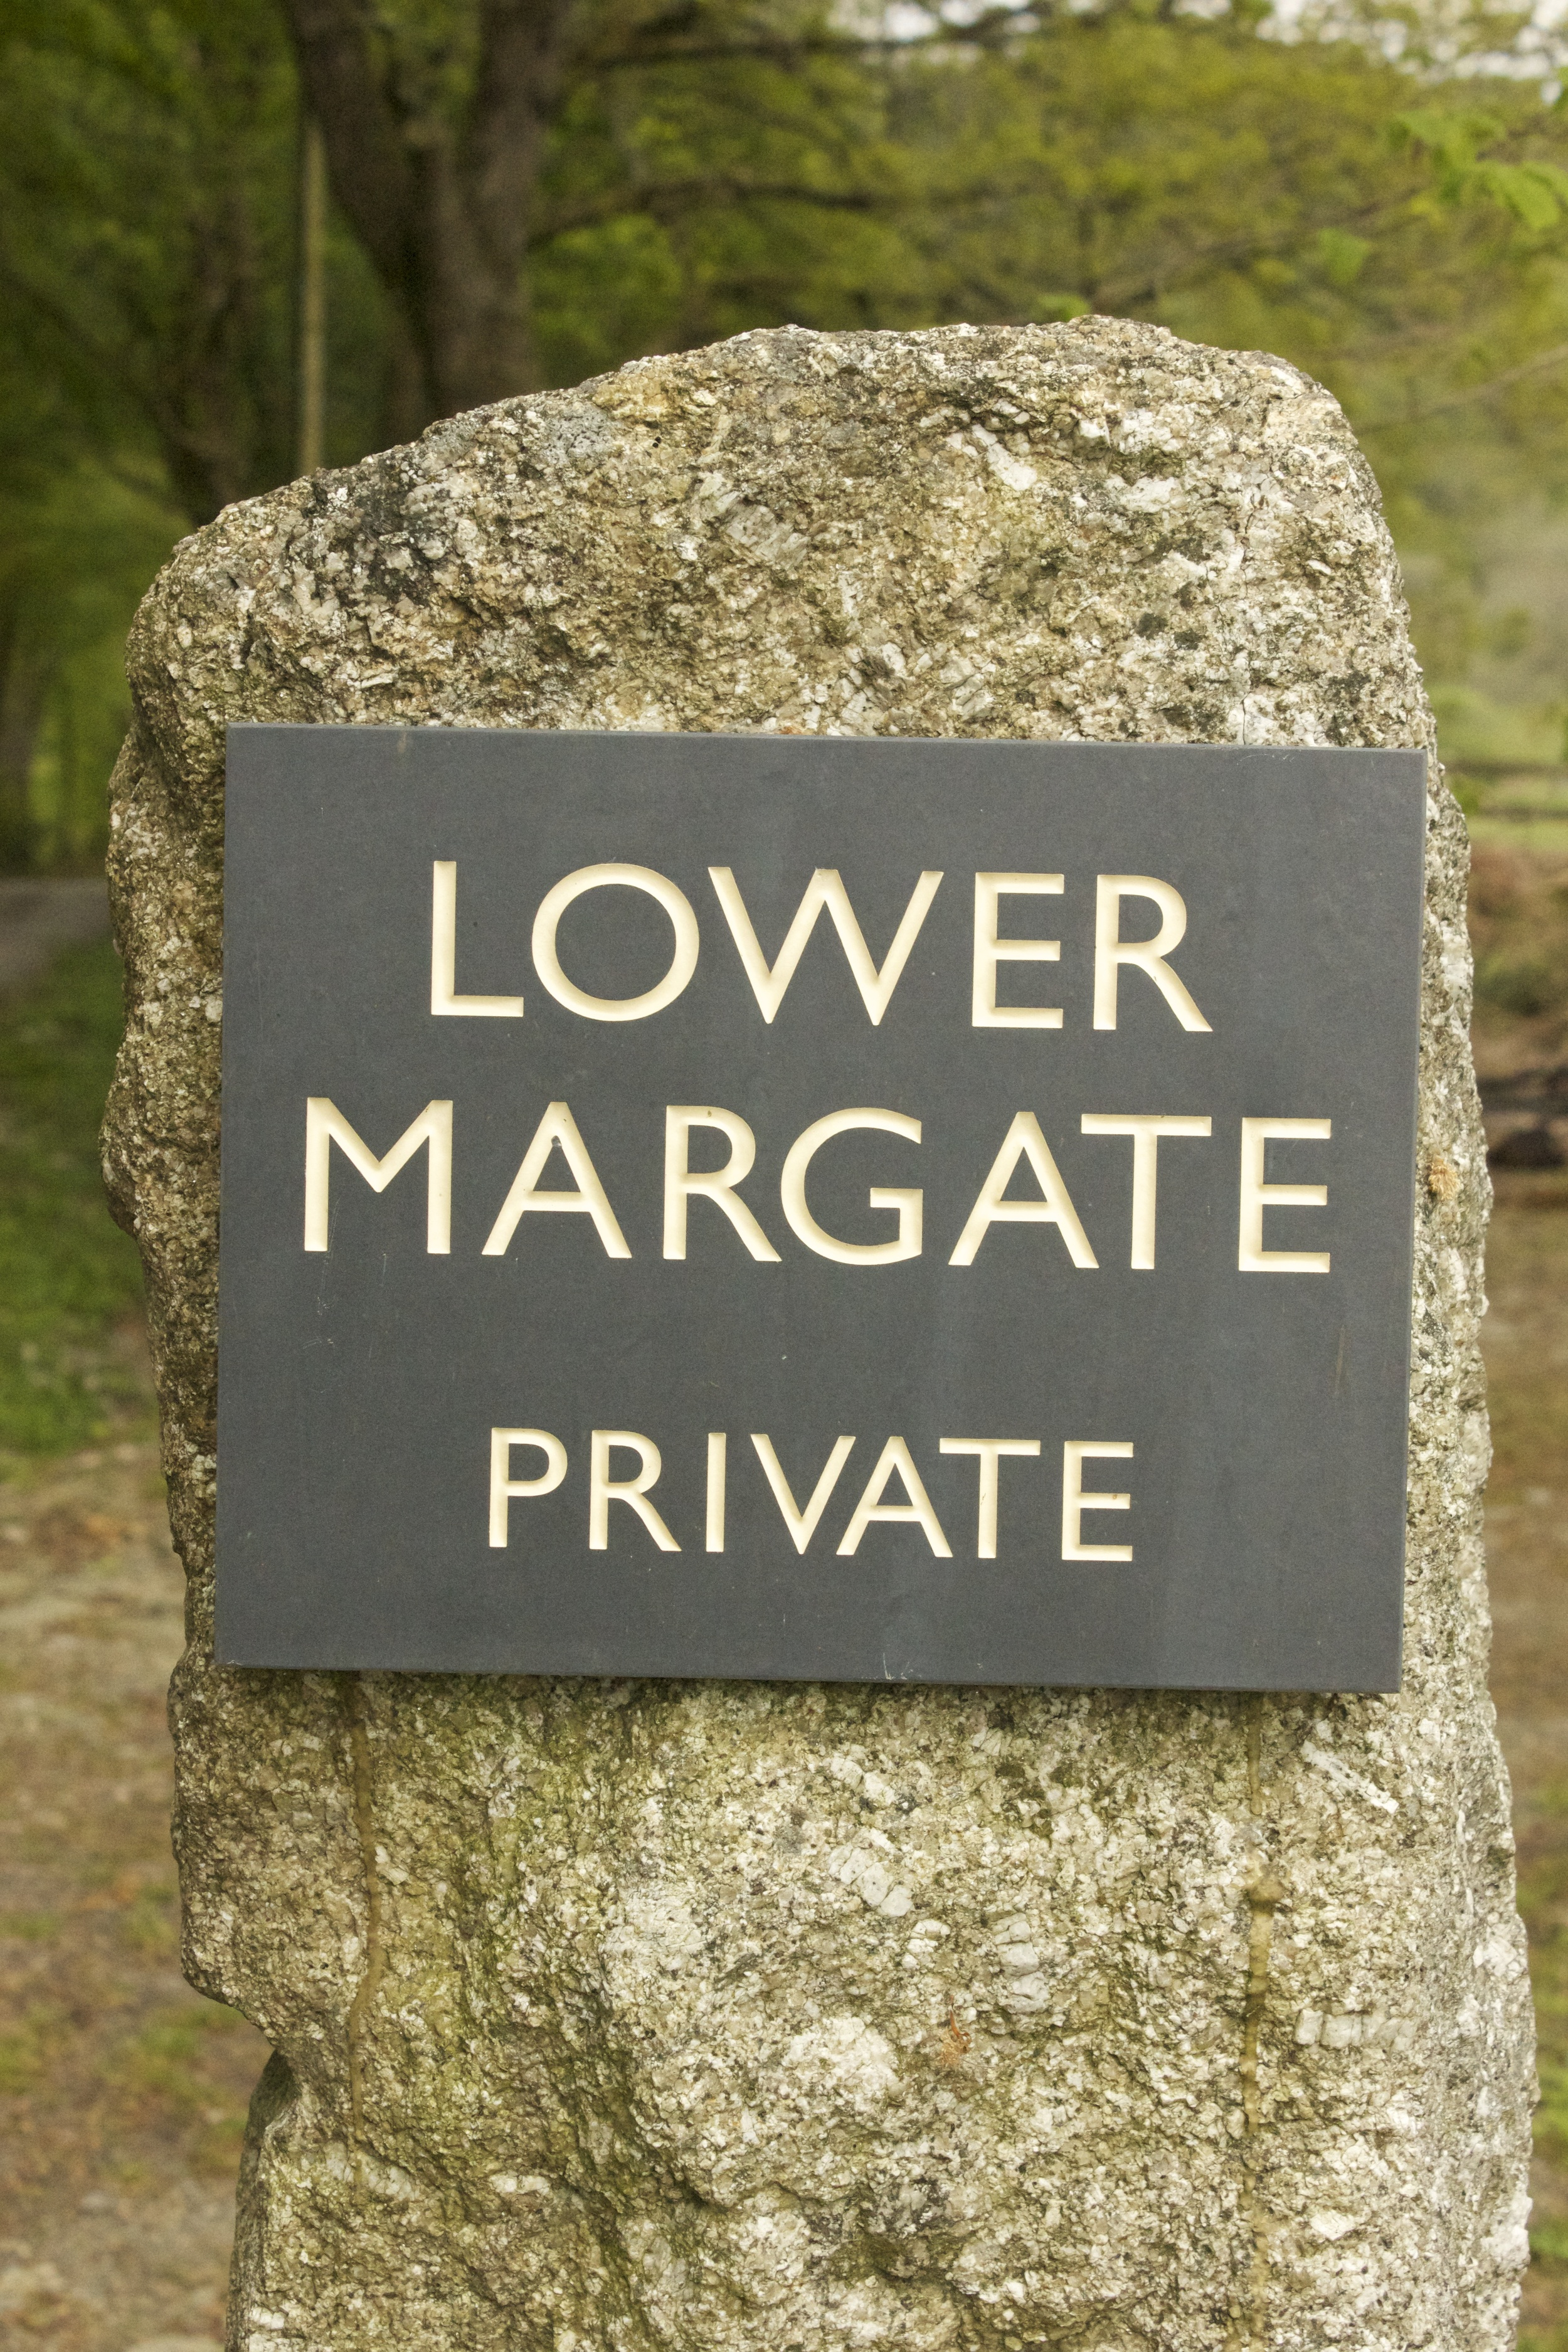 Entrance to Lower Margate.